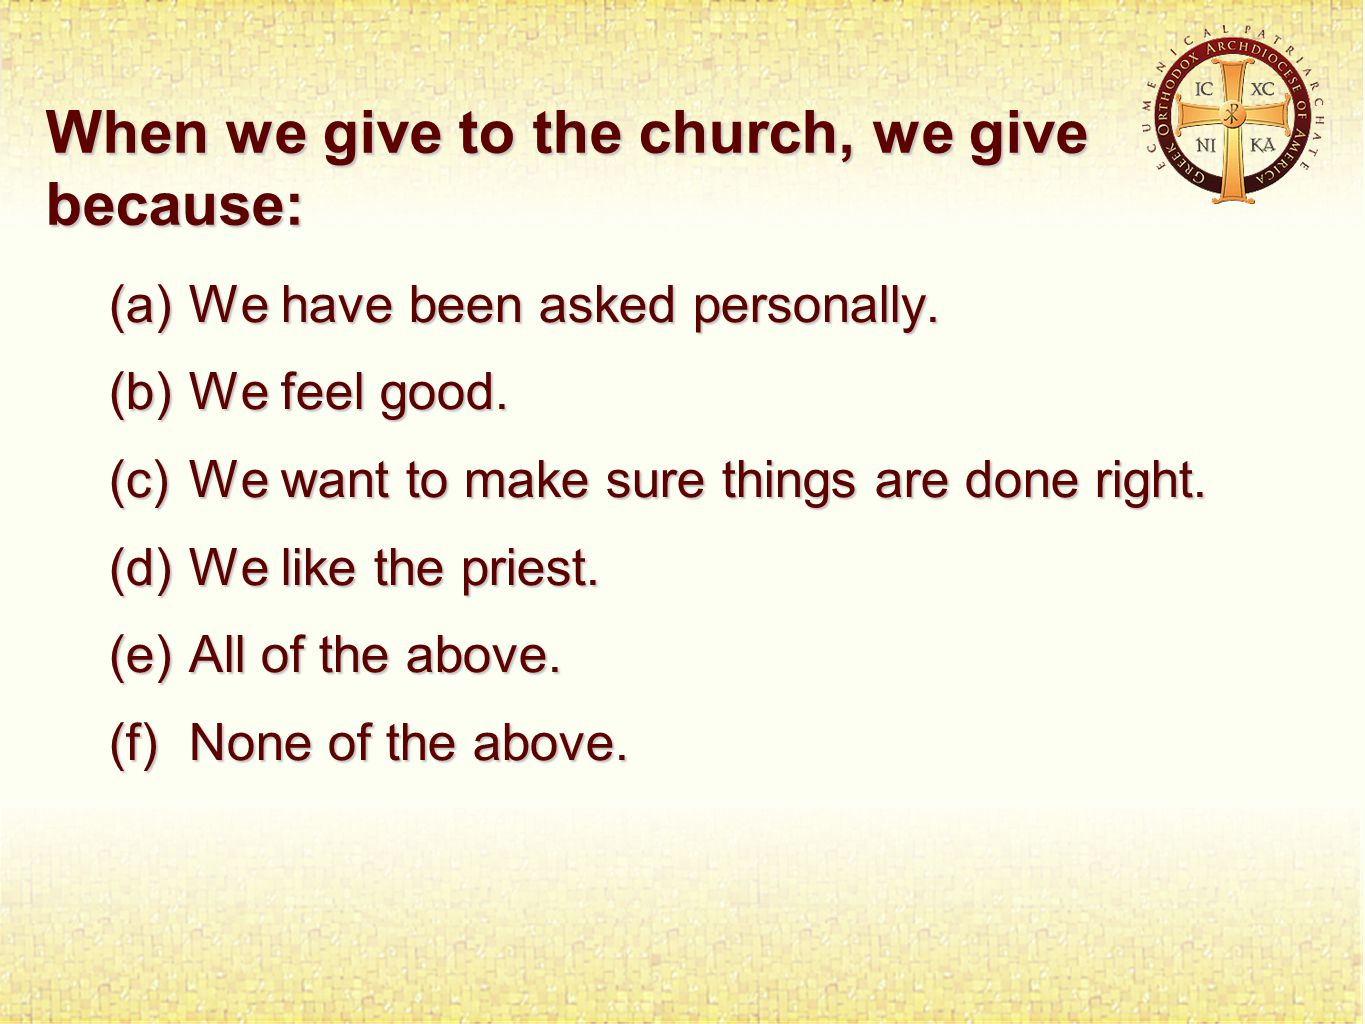 When we give to the church, we give because: (a)We have been asked personally.